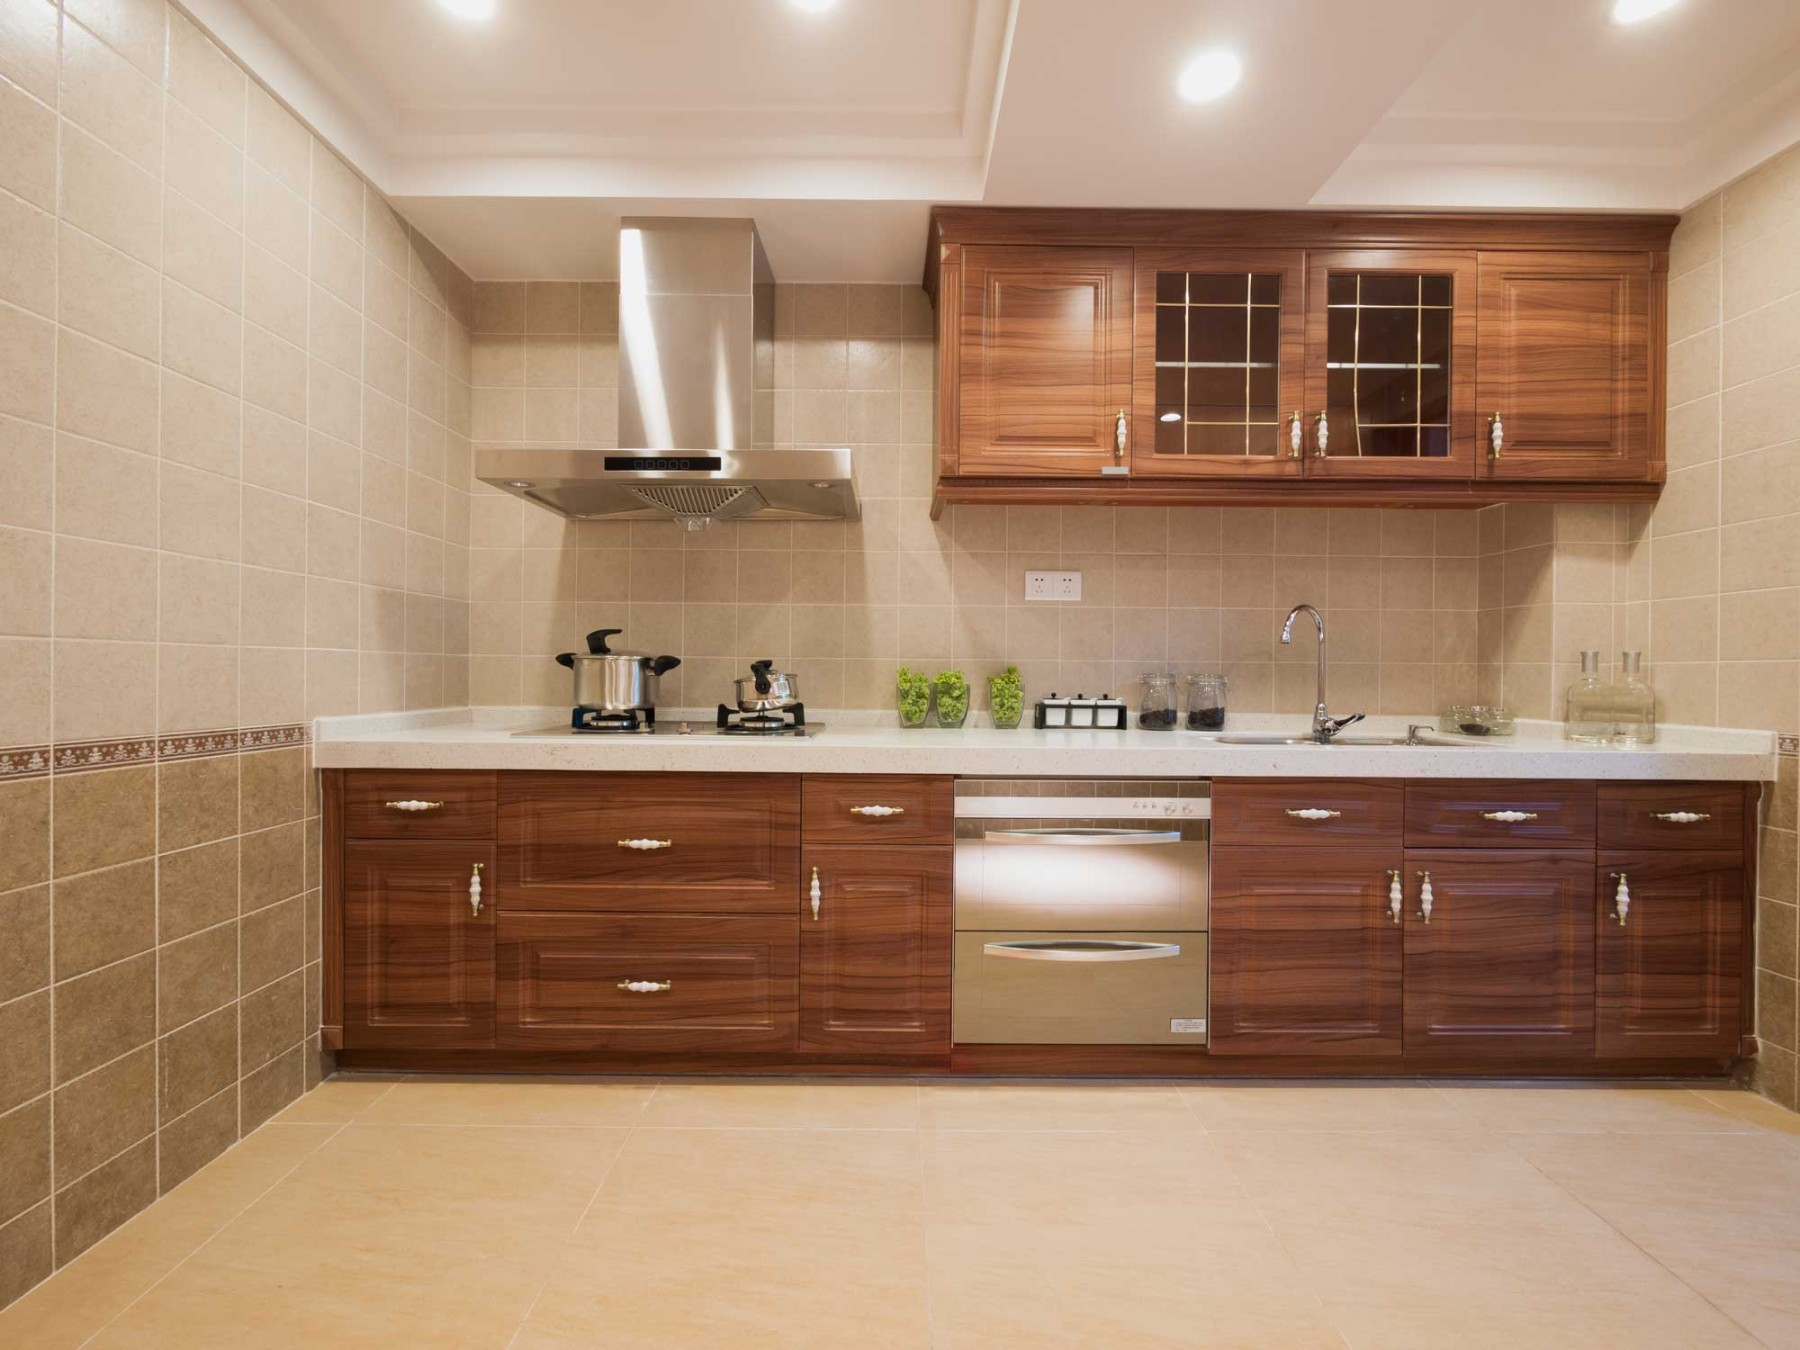 Kitchen Tiles Kenya flamingo tiles